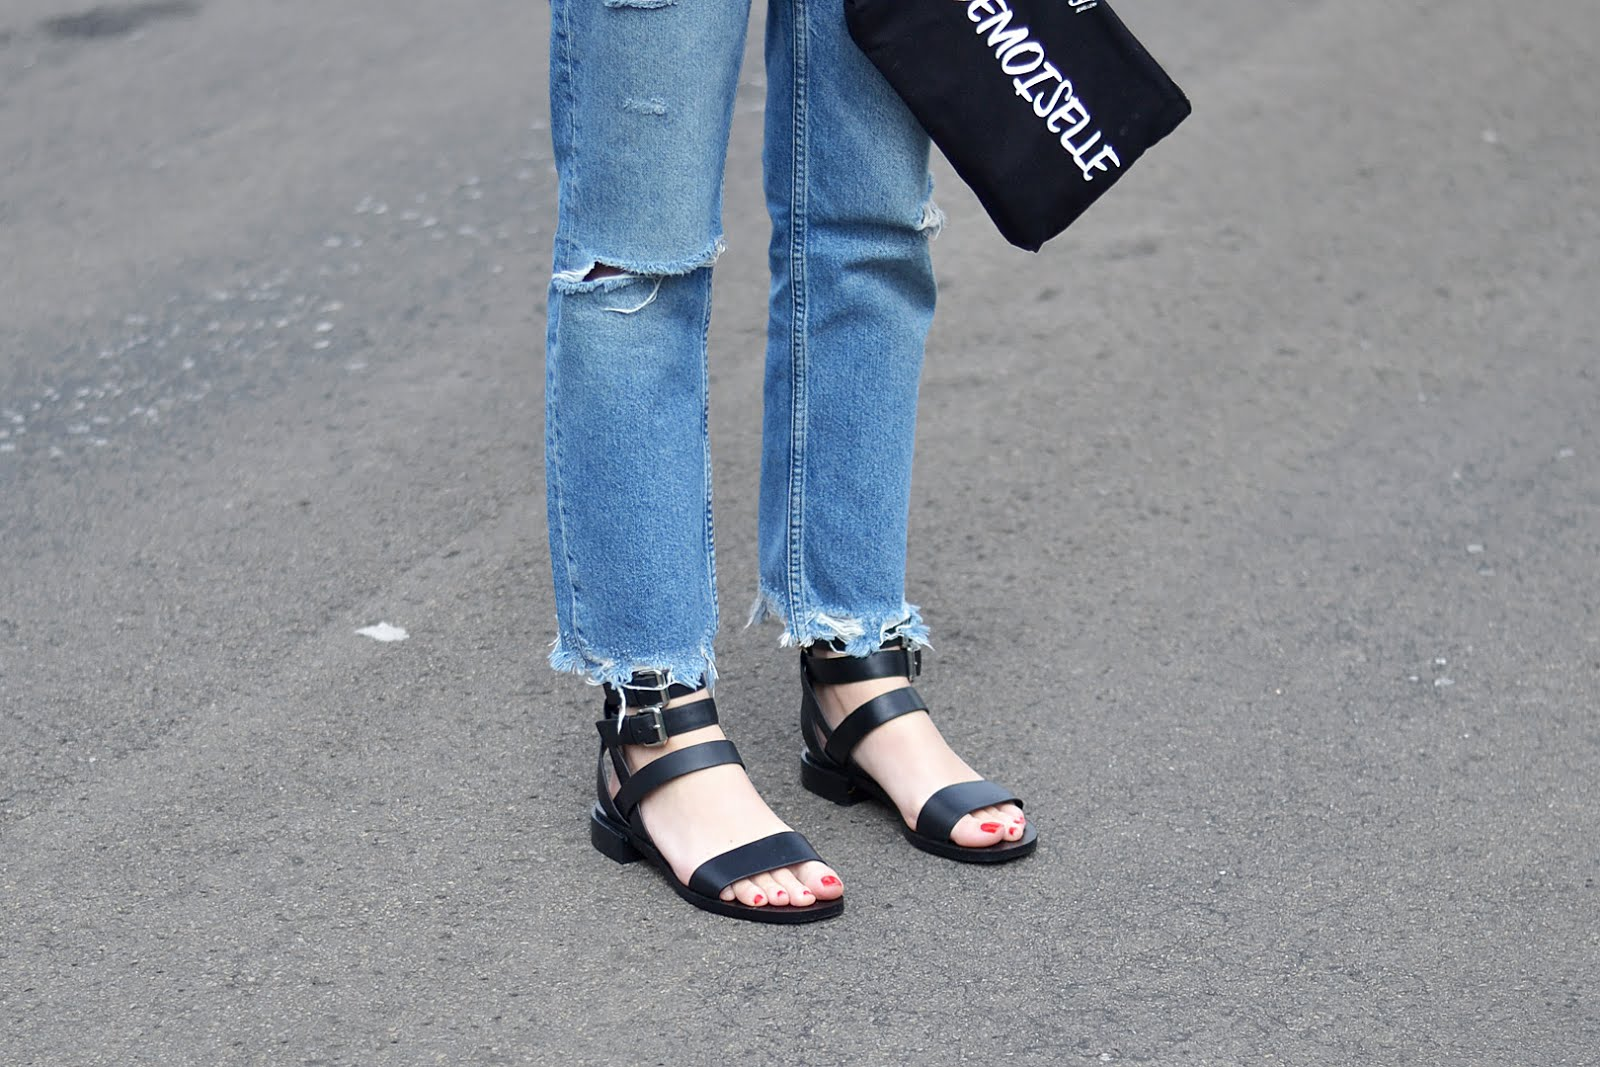 &other stories sandals, black leather, mango joe straight jeans, fringe hem, belgische mode blogger